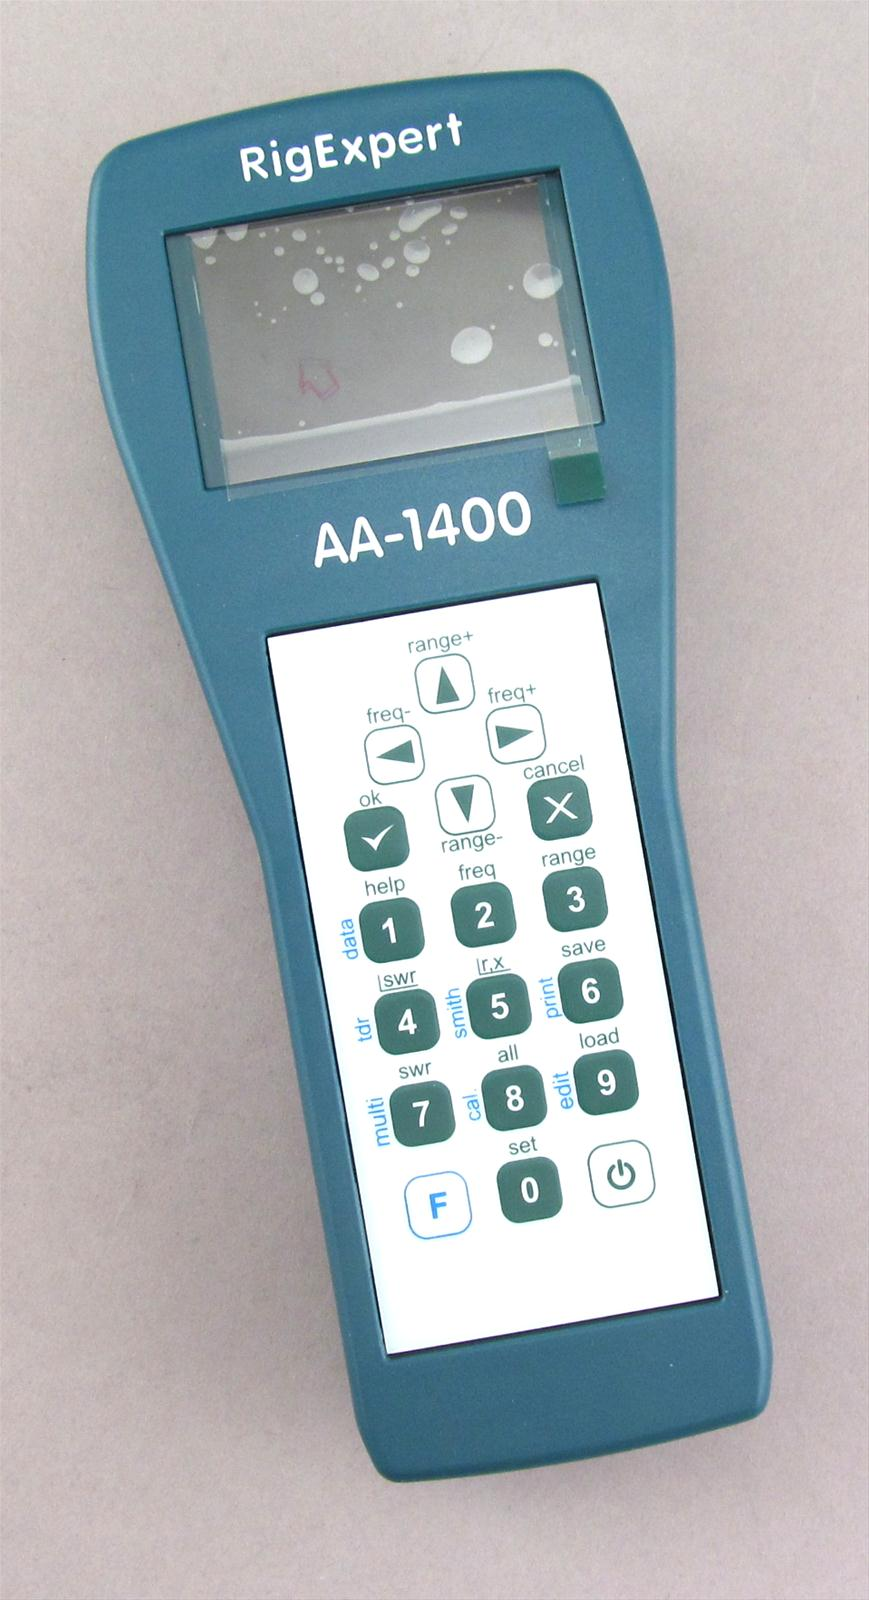 Details about RigExpert Antenna Analyzers AA-1400